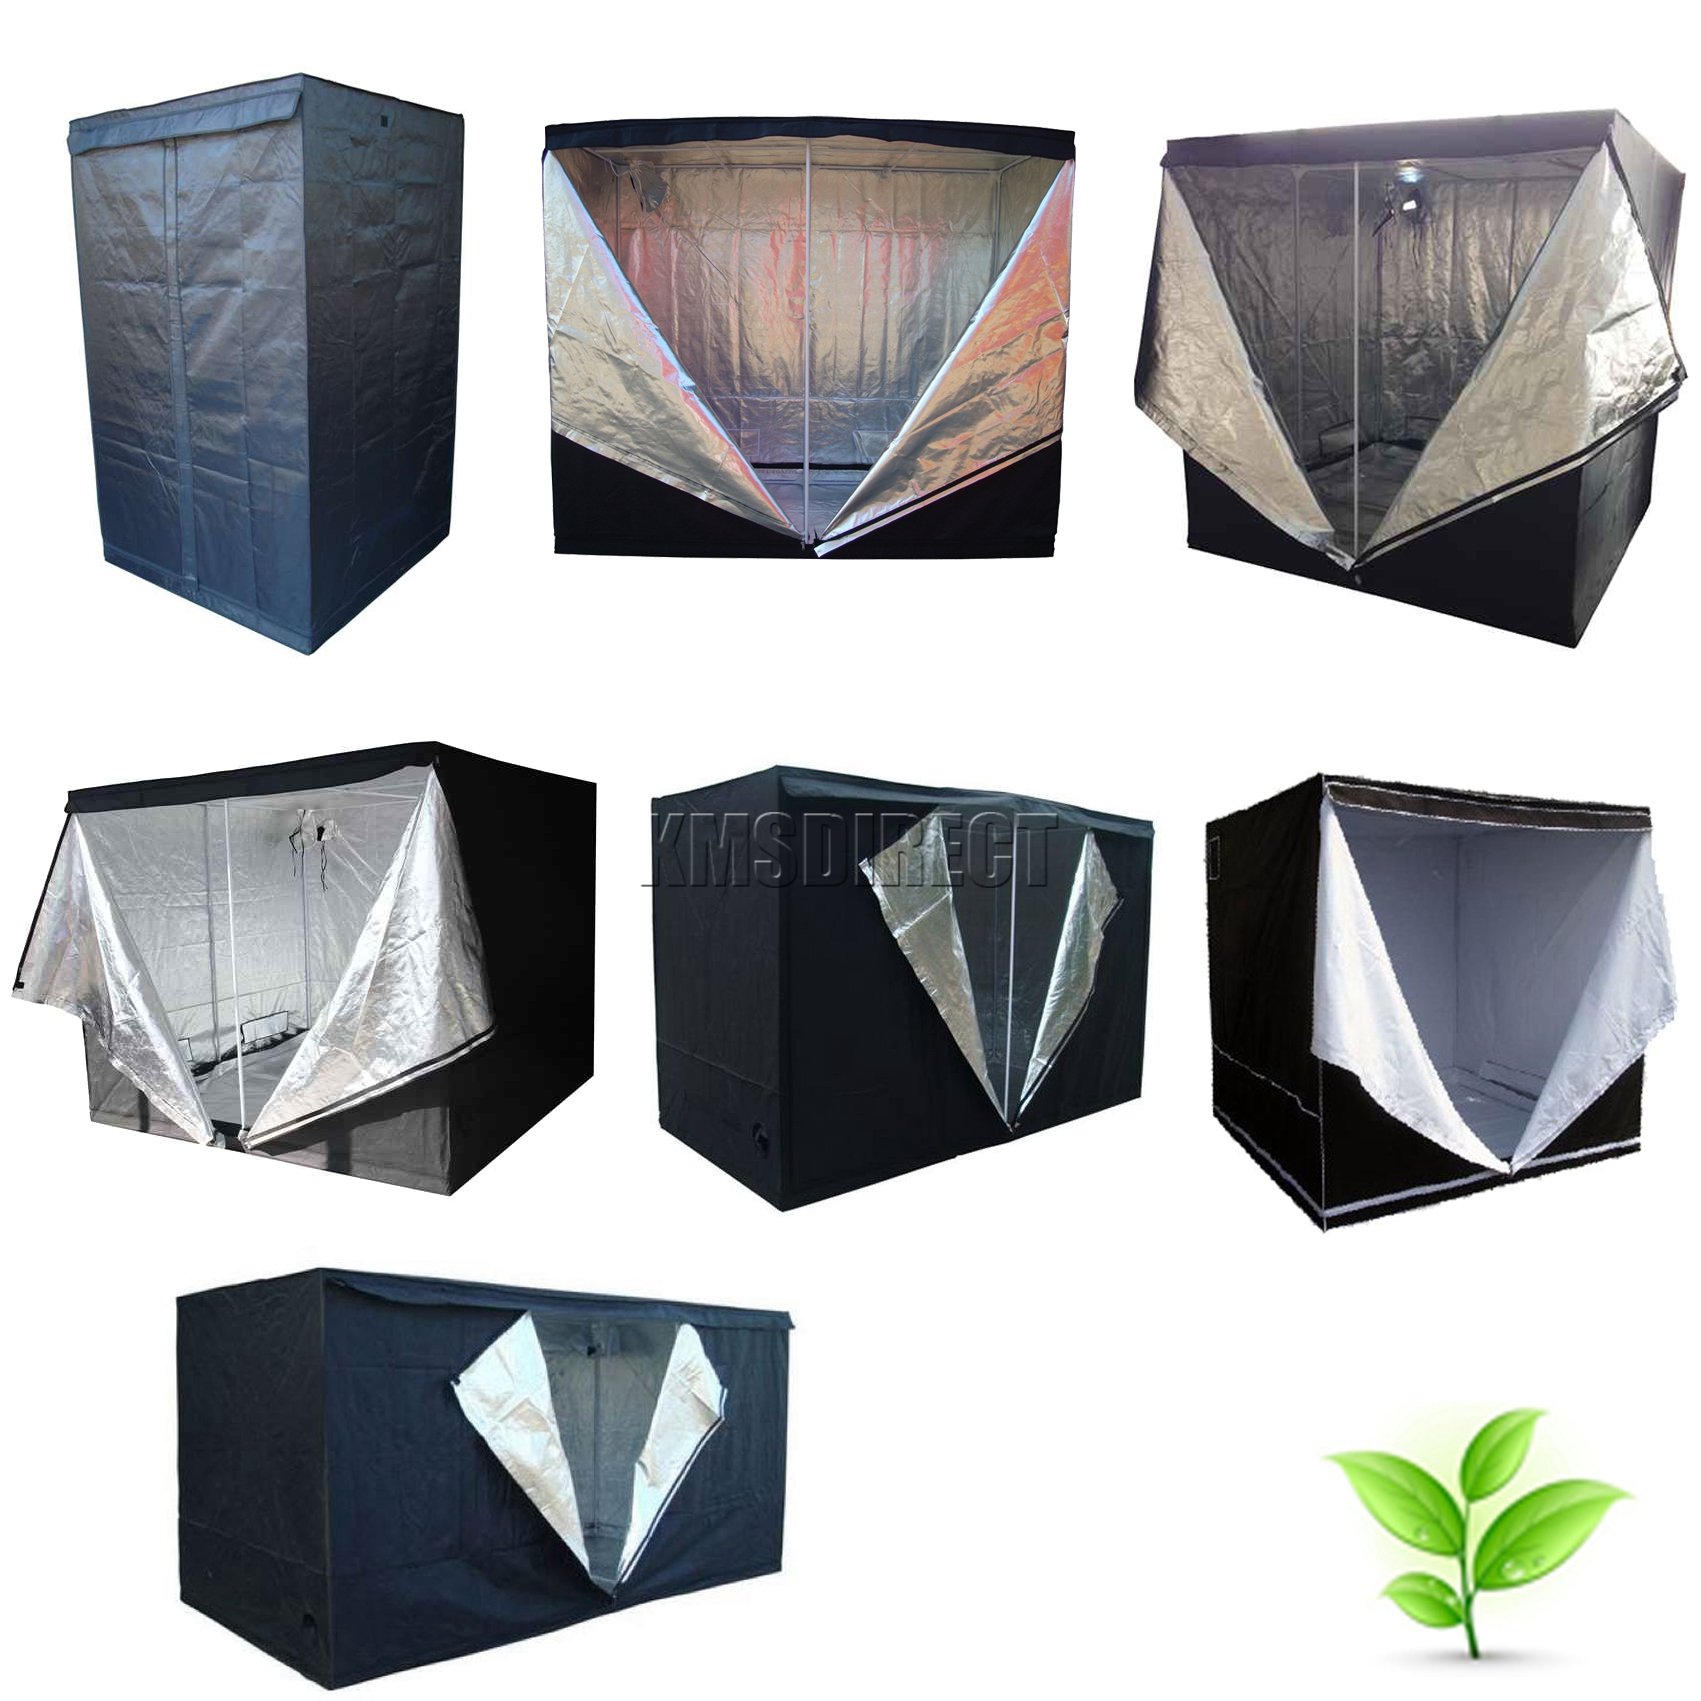 Sentinel Indoor Portable Grow Tent Bud Dark Green Room Silver Mylar Lined Hydroponic New  sc 1 st  eBay & Indoor Portable Grow Tent Bud Dark Green Room Silver Mylar Lined ...